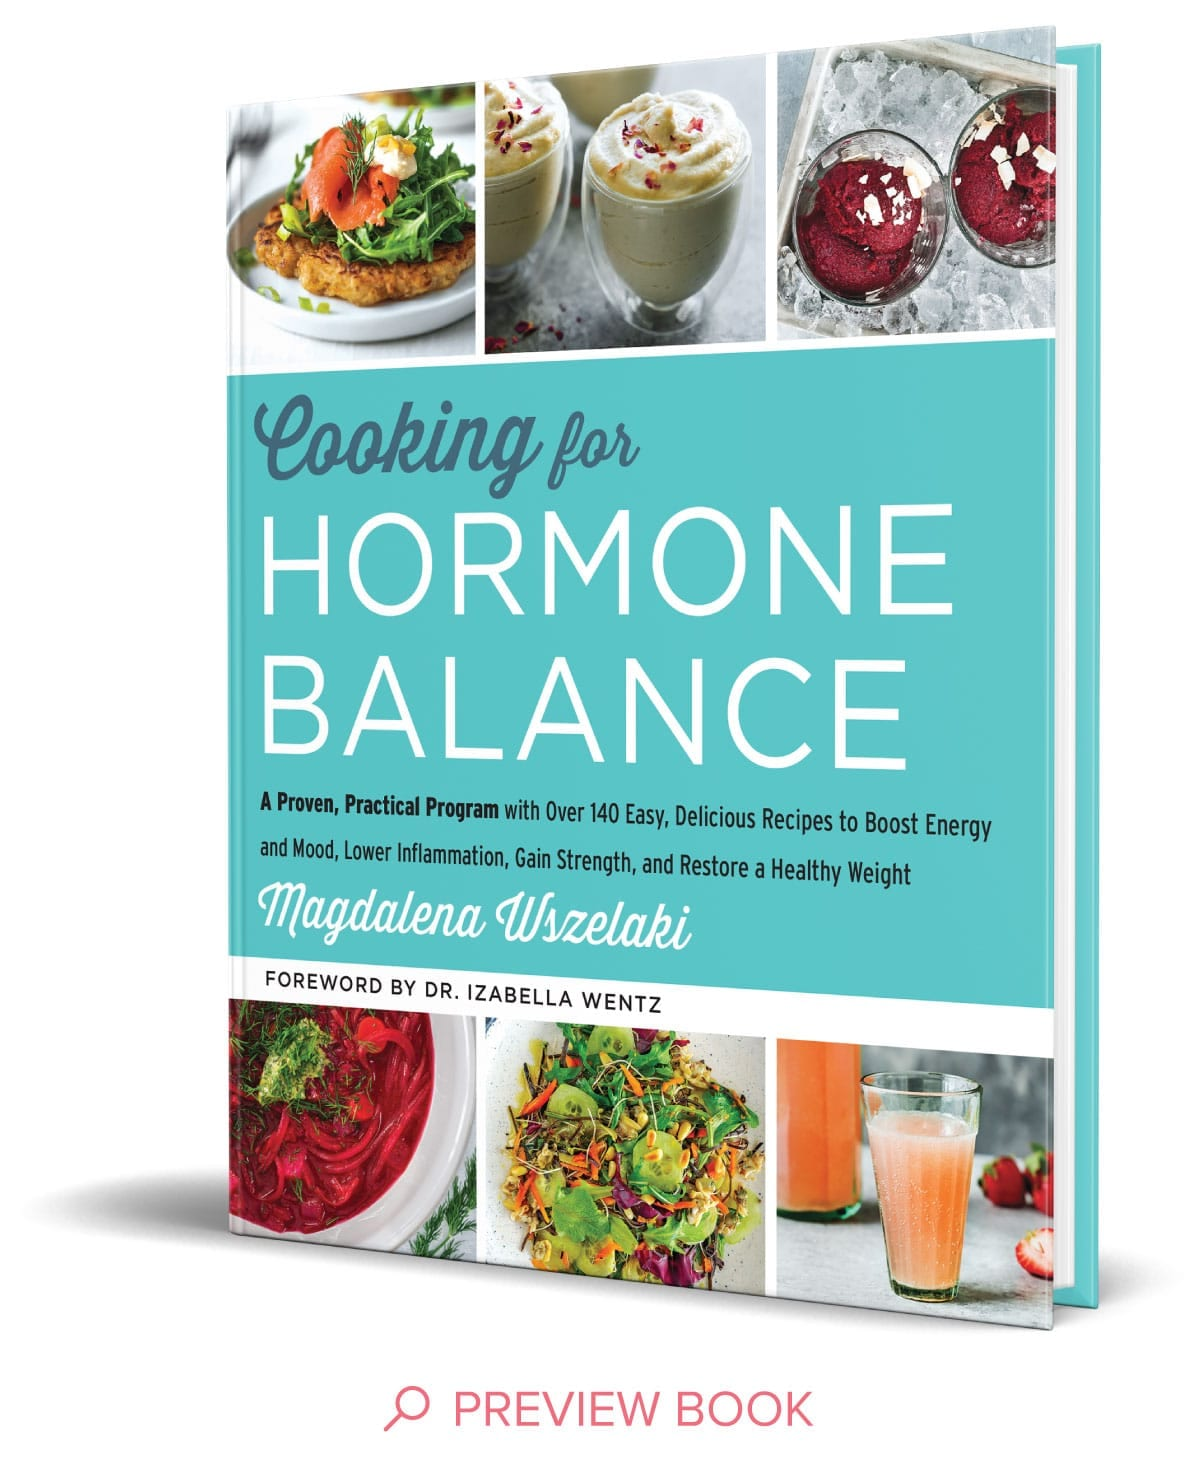 Cooking For Hormone Balance Book Cover